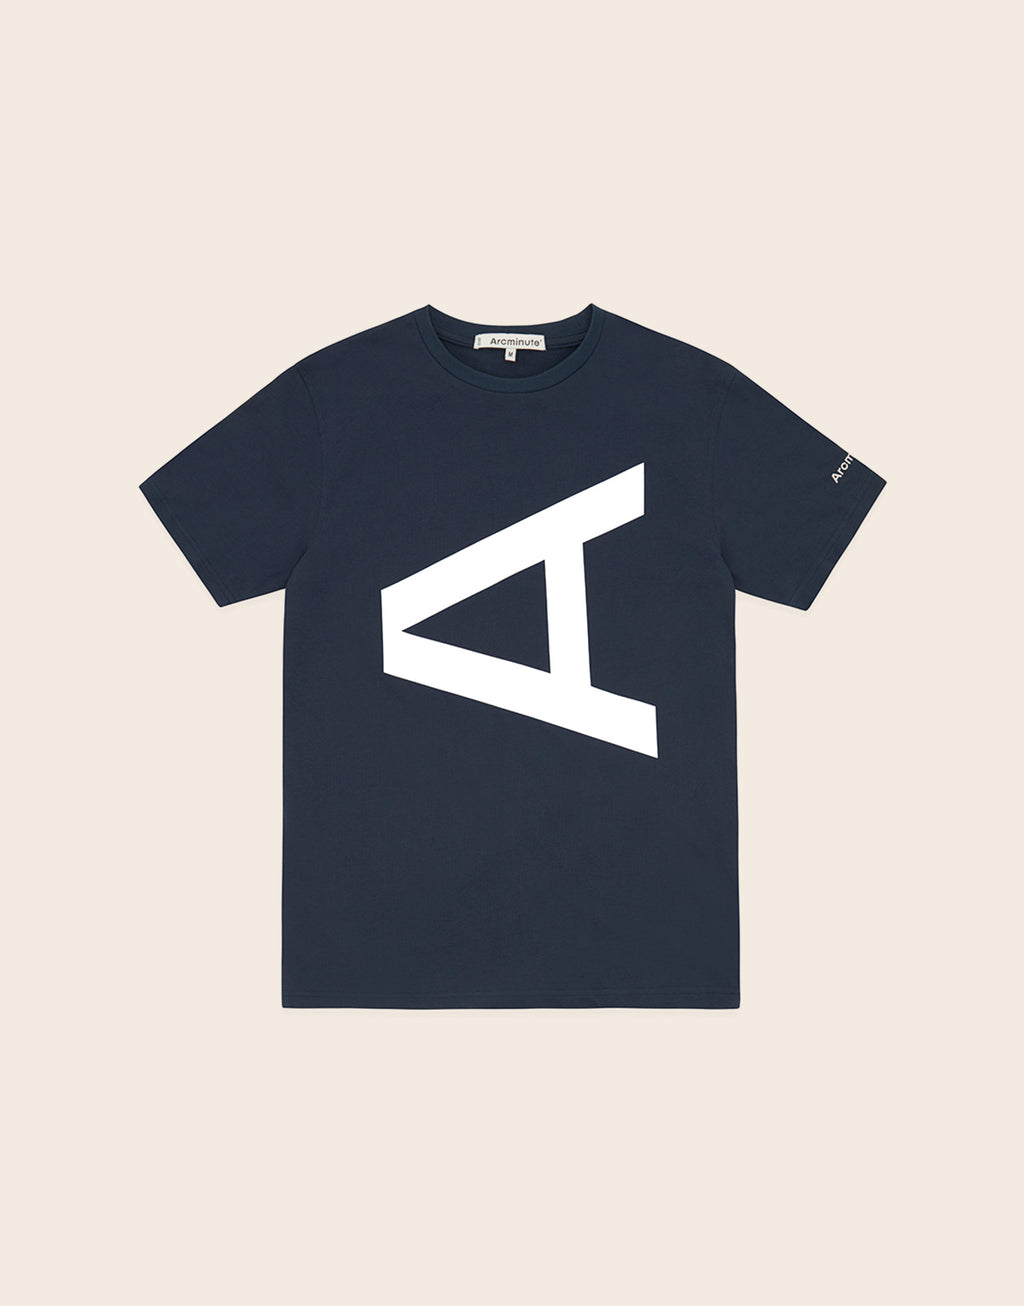 Atlantic T-Shirt Navy - Arcminute